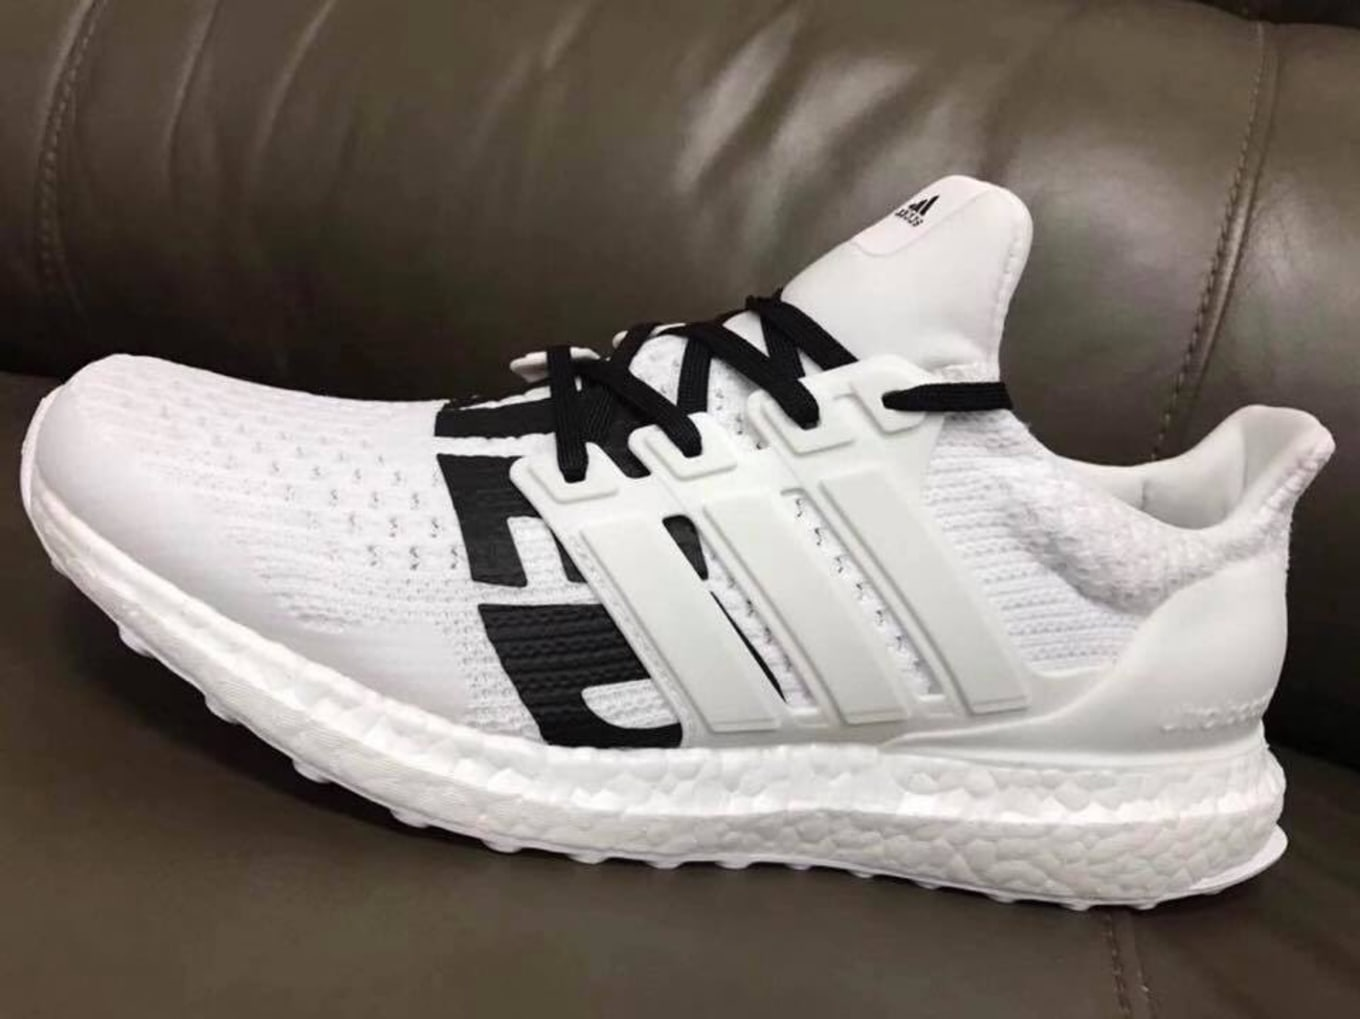 wholesale dealer bf95a 59db1 Undefeated Adidas Ultra Boost White Black | Sole Collector